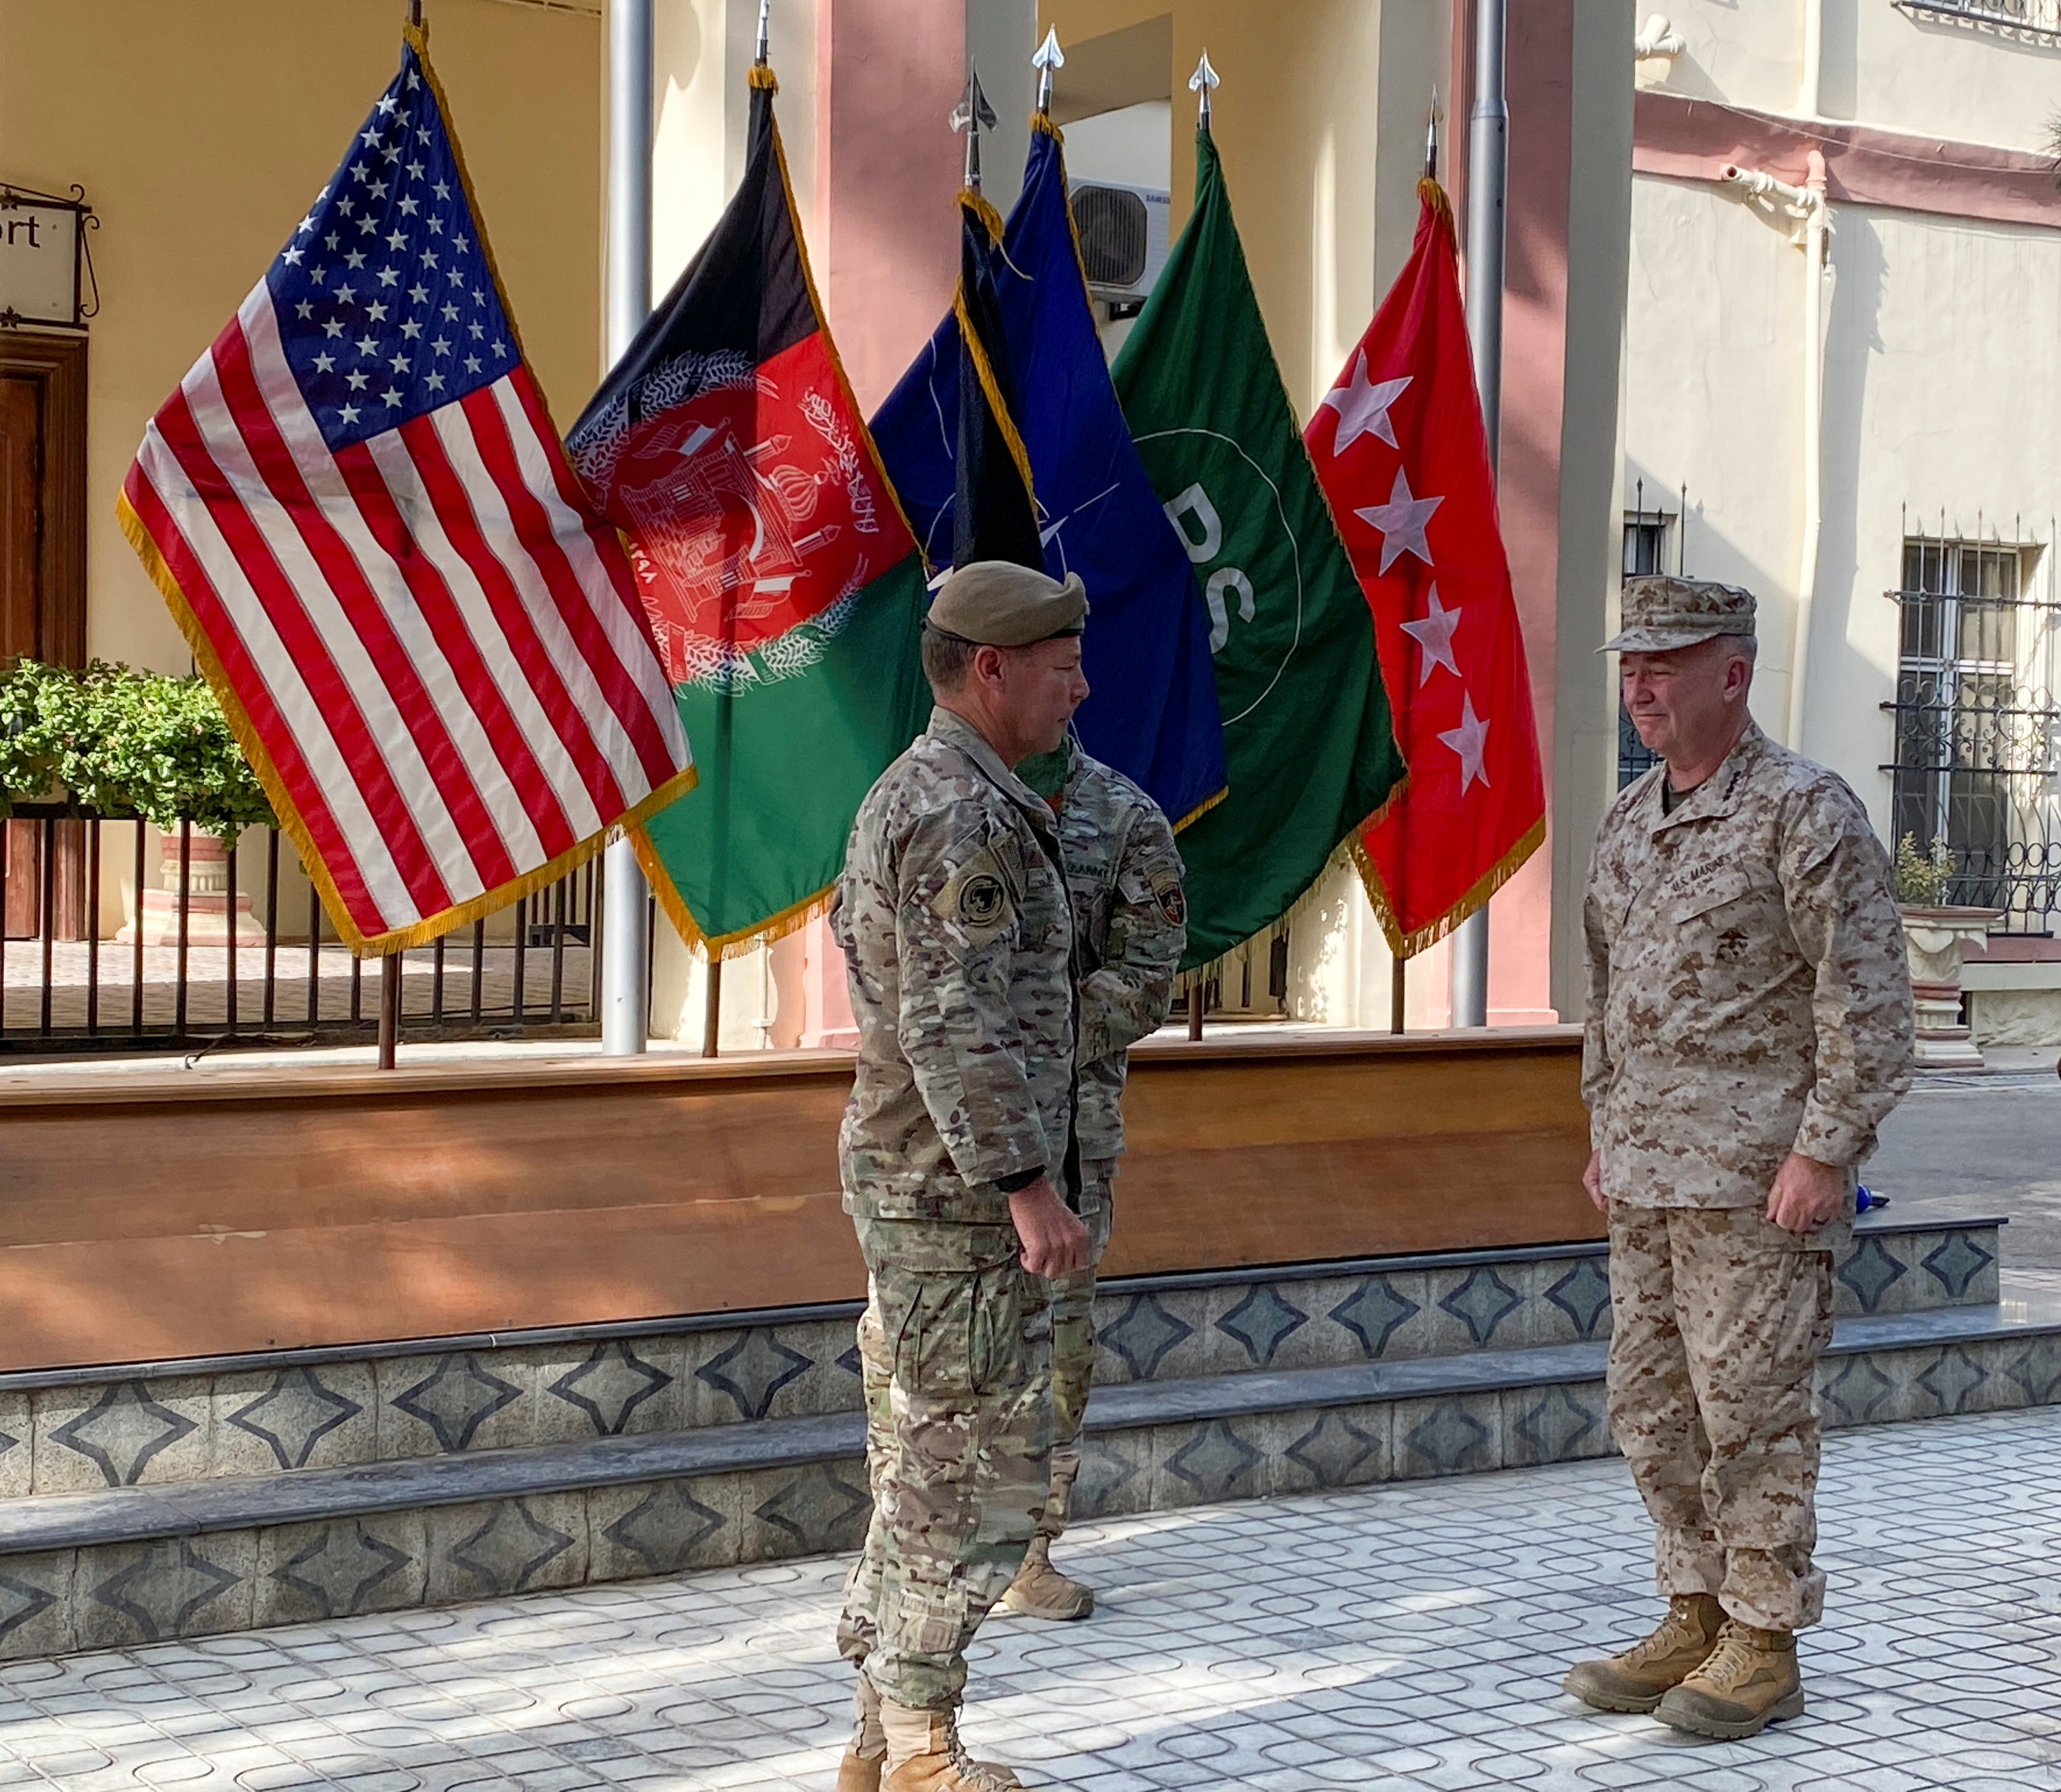 U.S. General Austin Miller, (L) and U.S. General Kenneth McKenzie,(R), at a ceremony in Kabul, as Miller relinquishes command during the final phase of America's withdrawal from the war in Afghanistan July 12, 2021.REUTERS/Phil Stewart